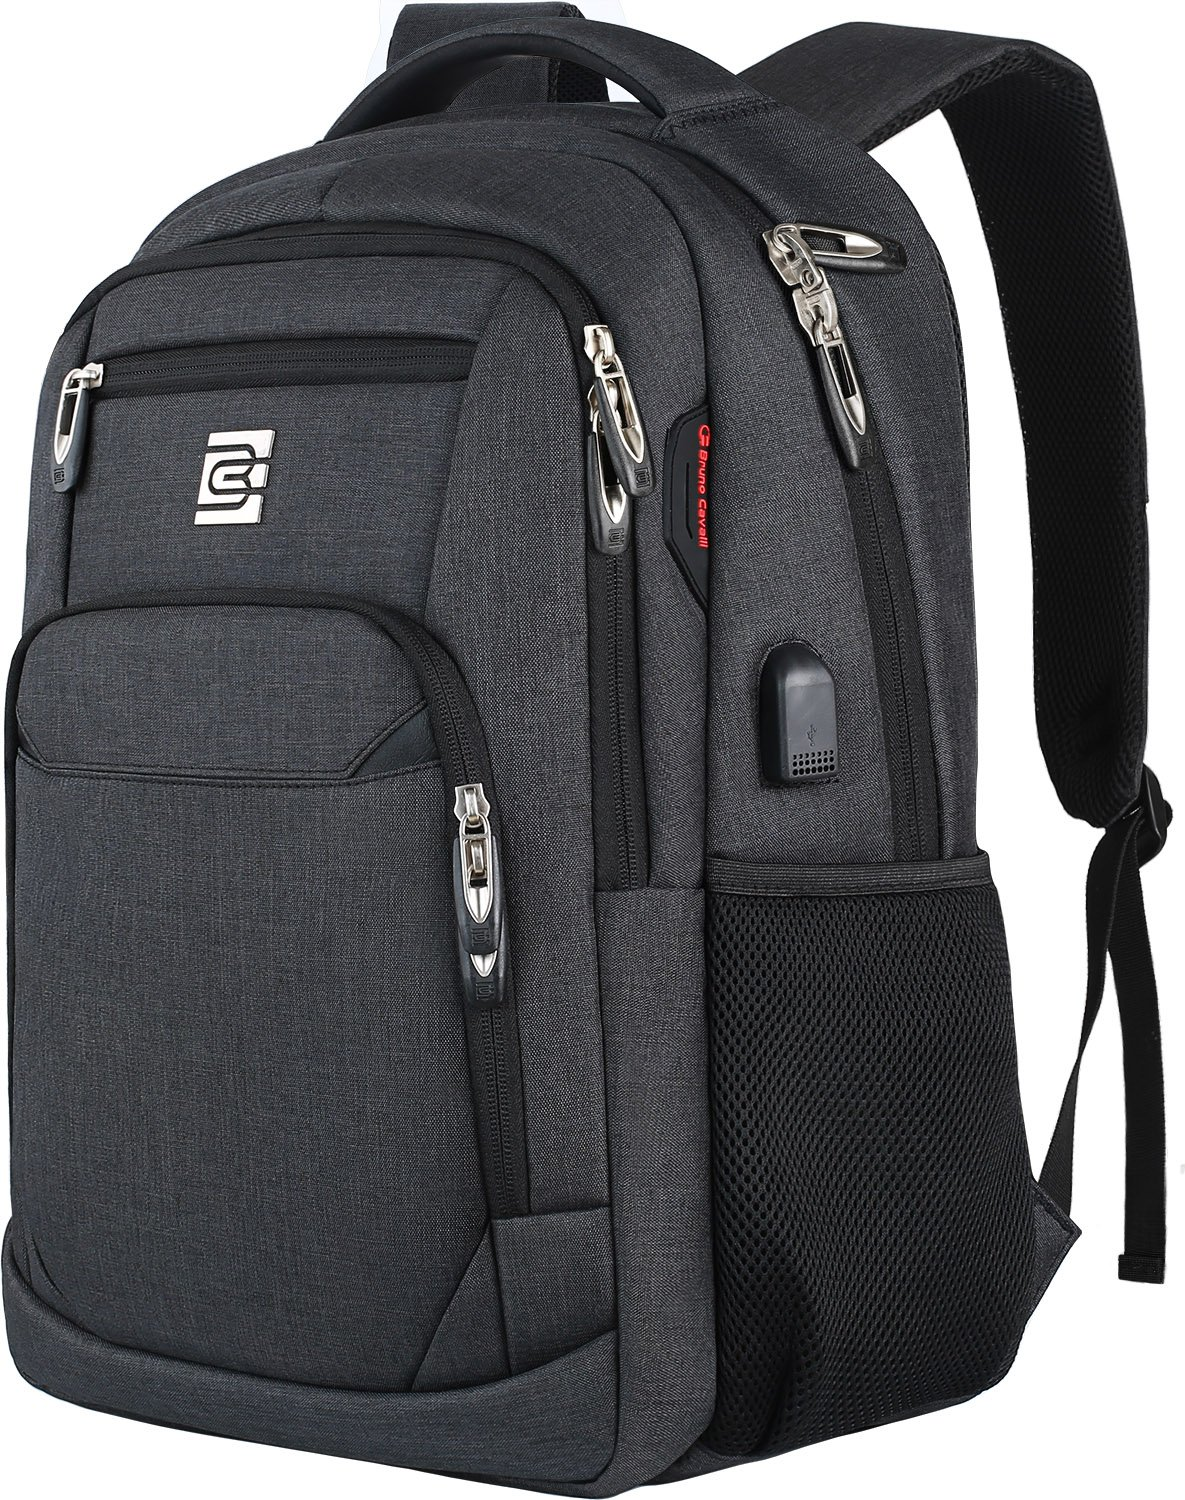 Laptop Backpack,Business Travel Anti Theft Slim Durable Laptops Backpack with USB Charging Port,Water Resistant College School Computer Bag for Women & Men Fits 15.6 Inch Laptop and Notebook - Black by Volher